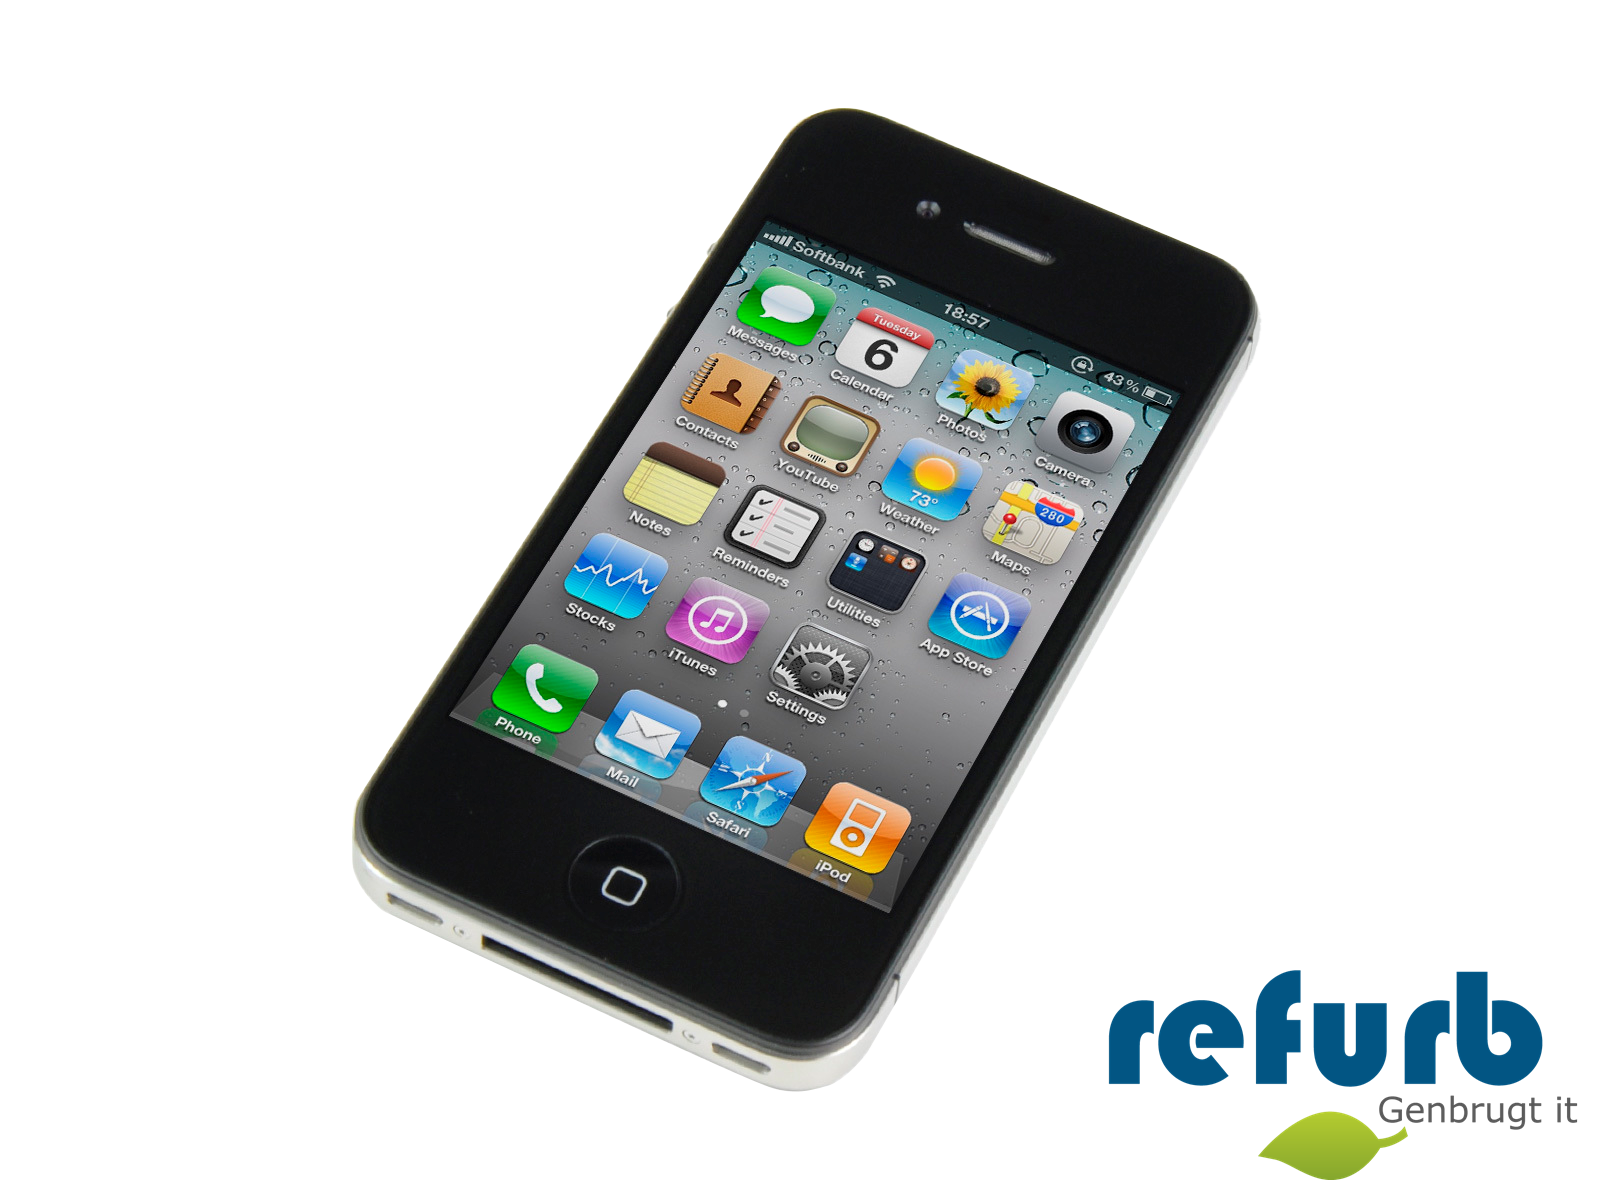 refurbished iphone 4s billig apple iphone 4s k 248 b genbrugt it af h 248 j kvalitet 12849